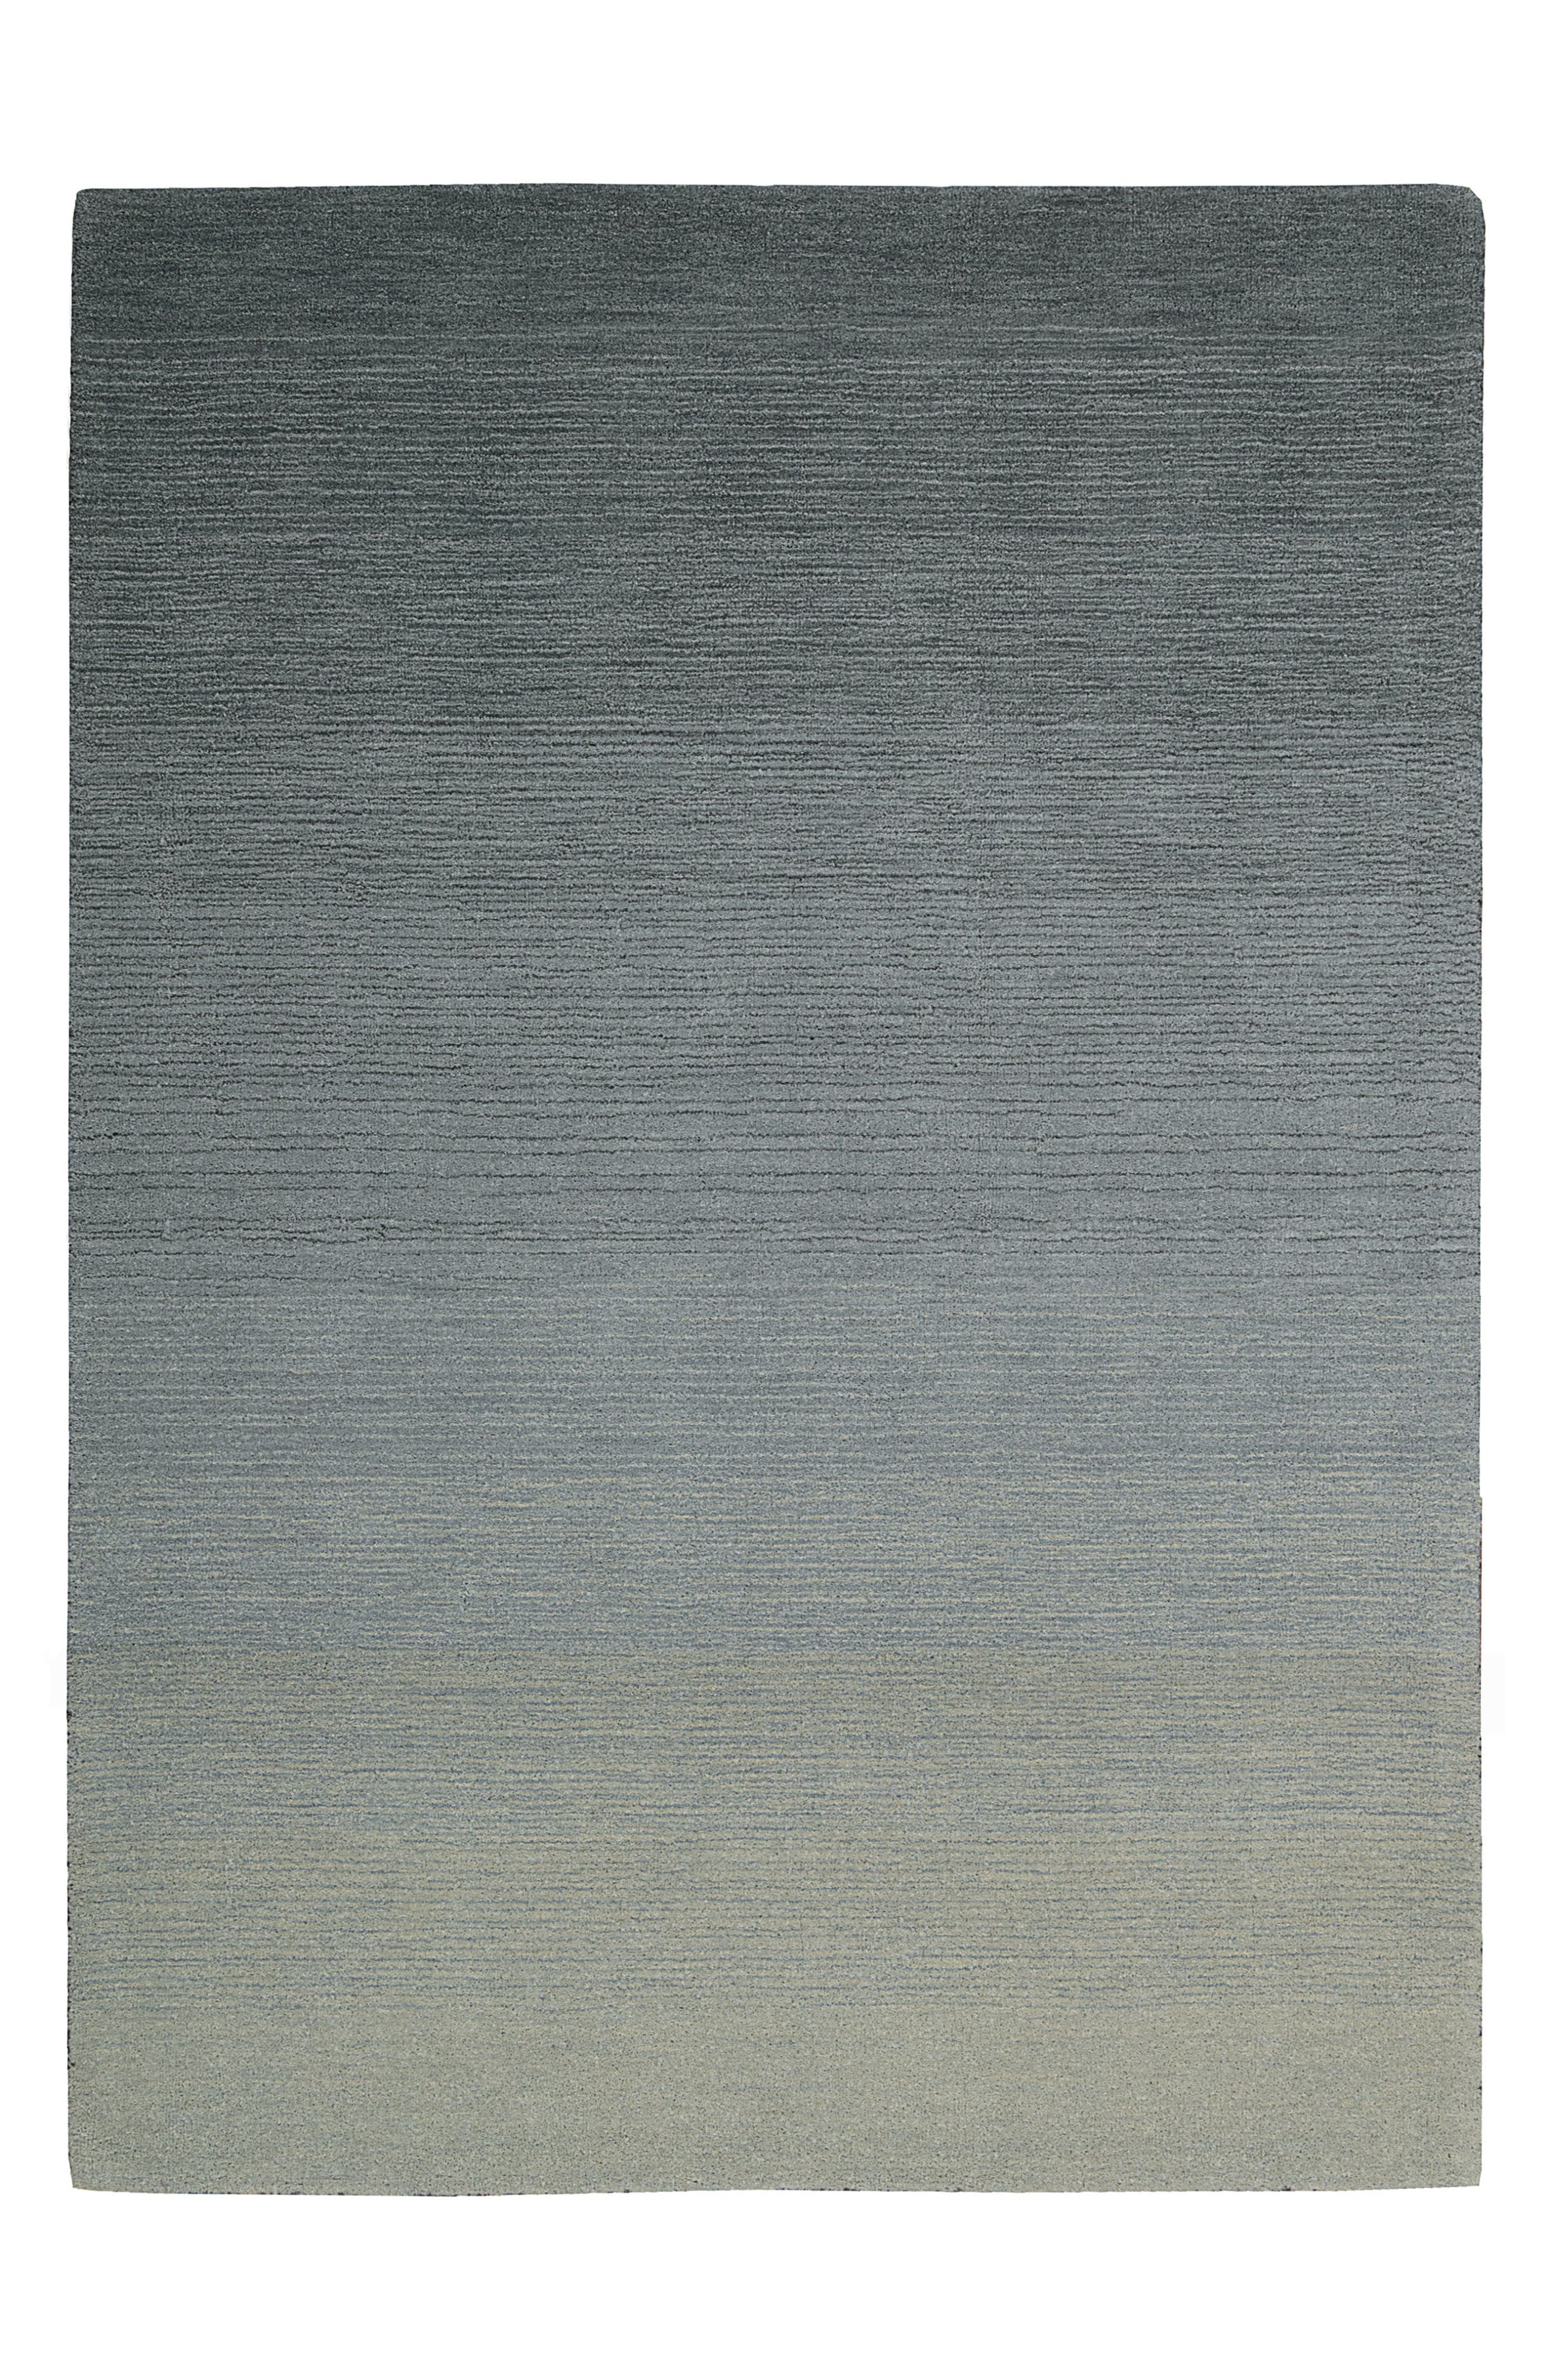 Haze Smoke Wool Area Rug,                         Main,                         color, Brook